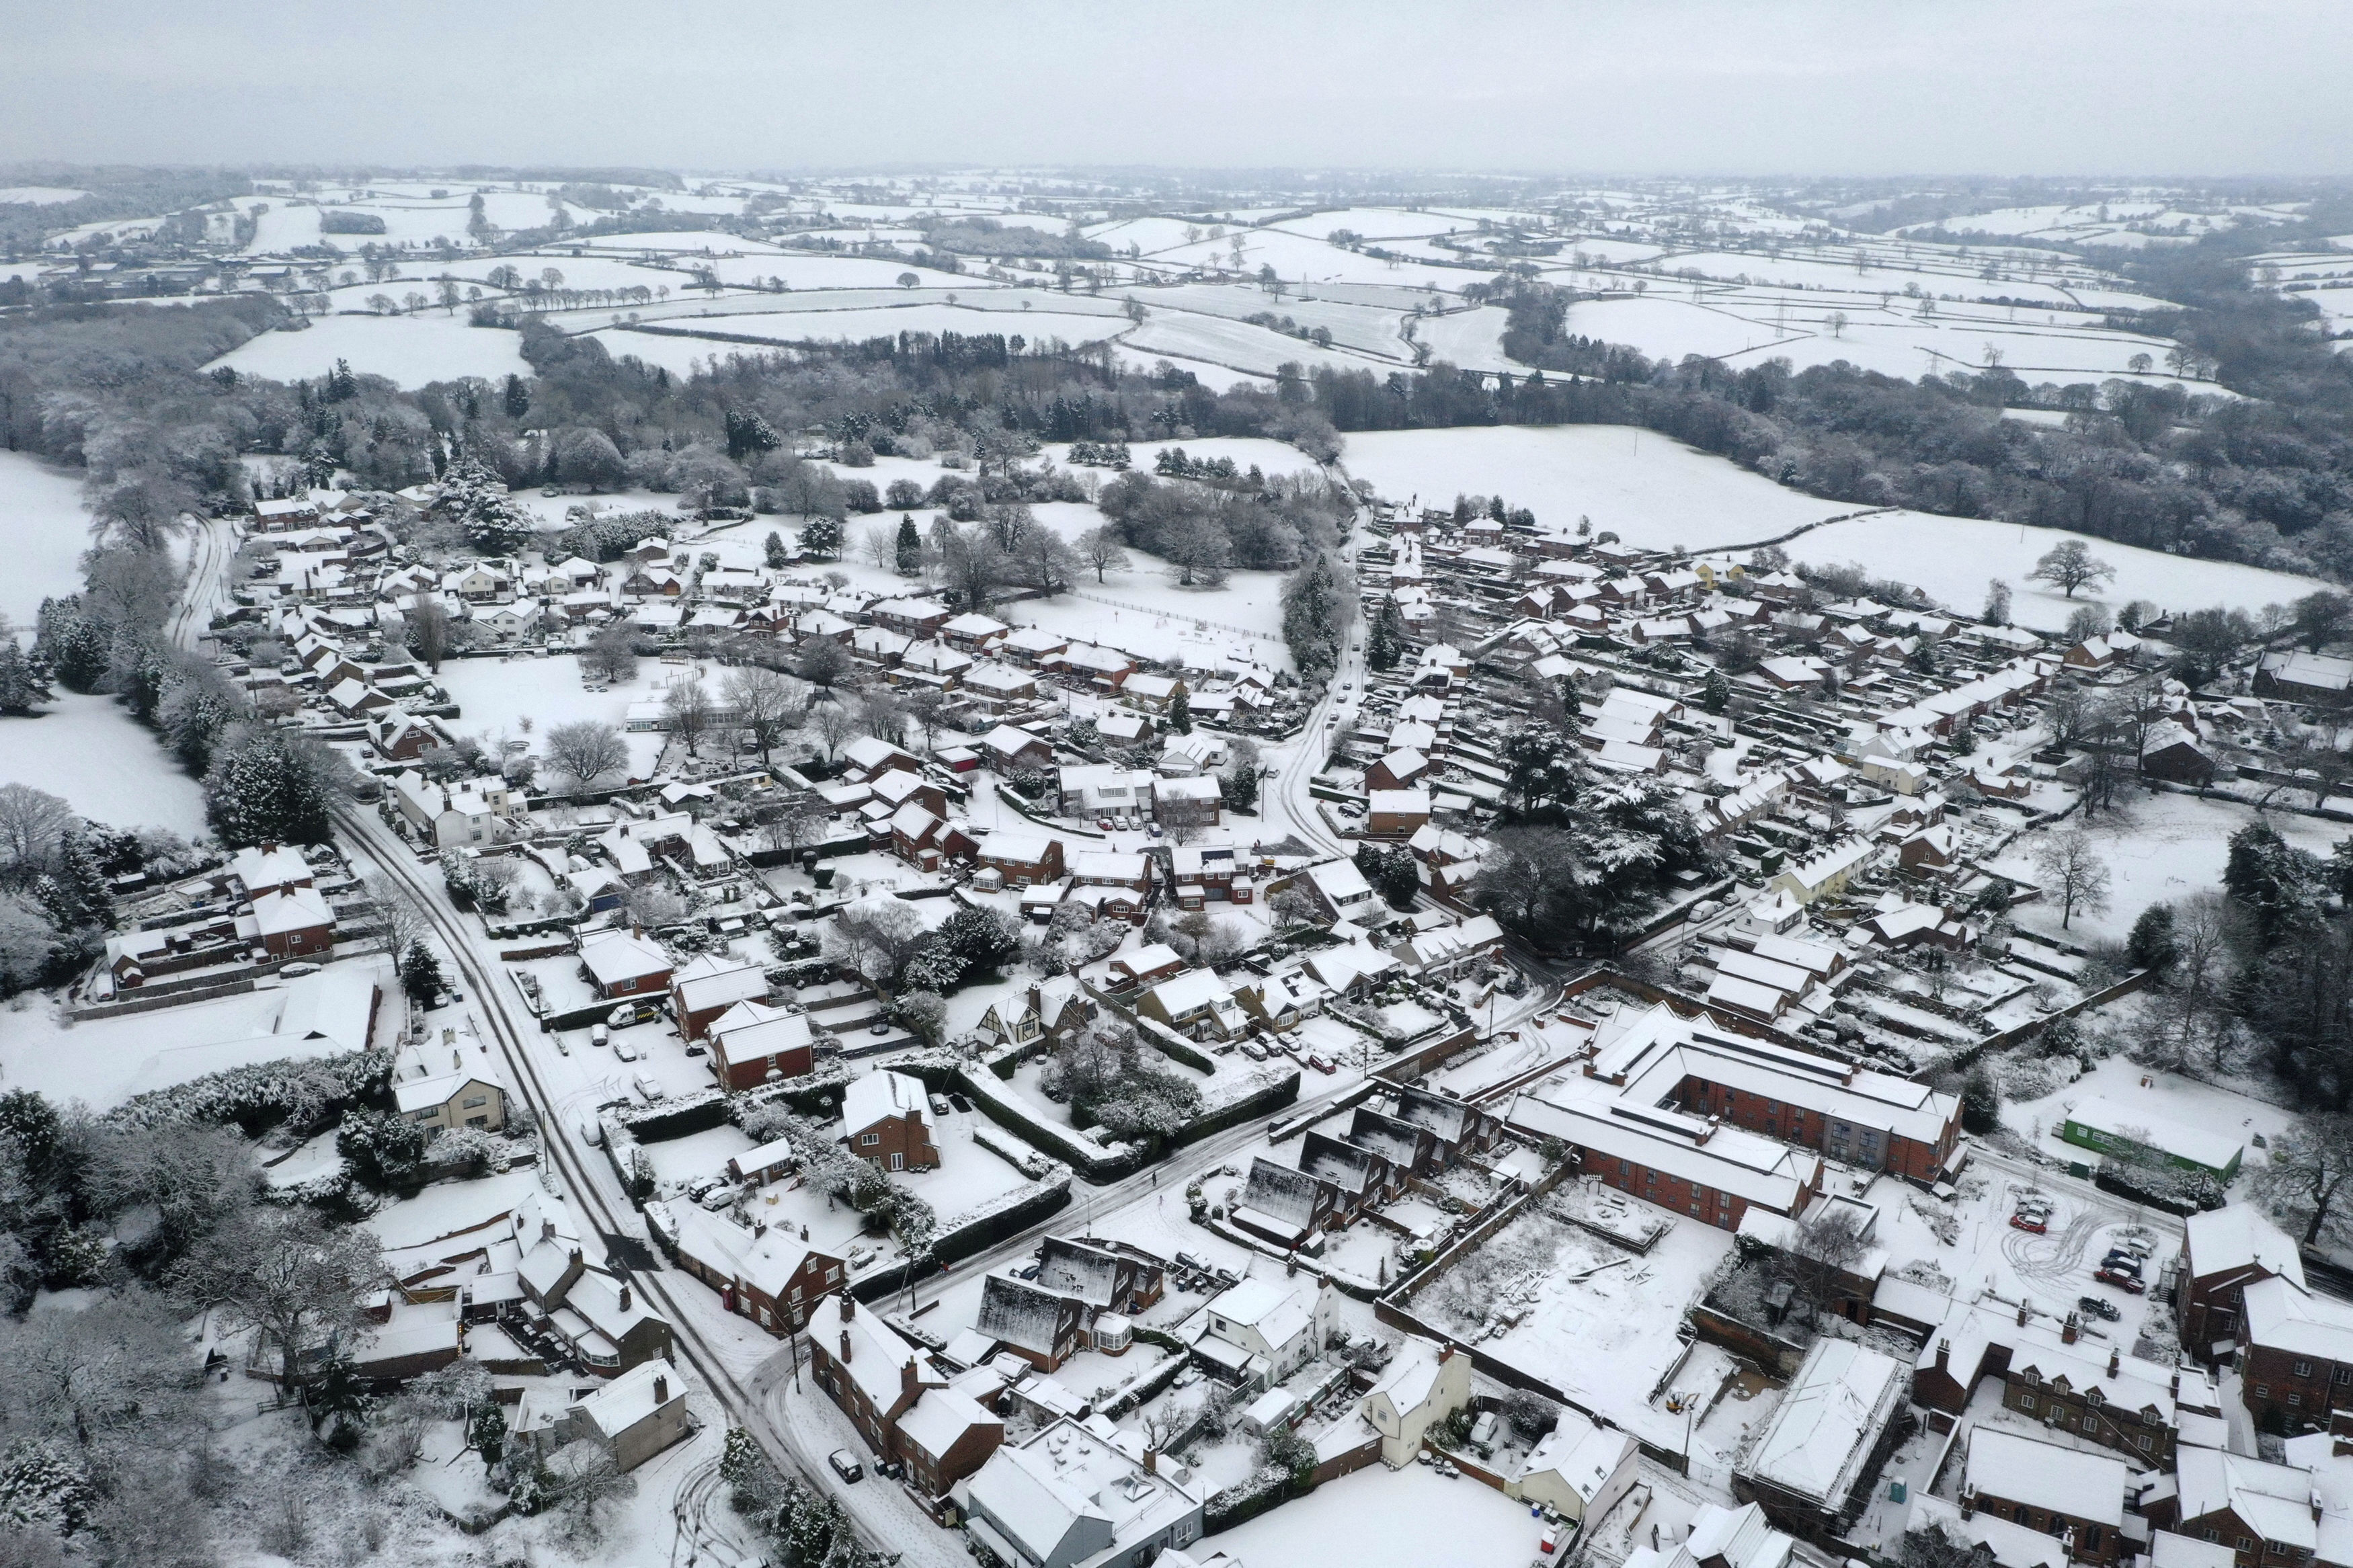 An aerial view of snow covered houses in the village of Oulton in Staffordshire, England, Monday, Dec. 28, 2020. In the aftermath of Storm Bella swathes of the UK are braced for a cold snap, with snow and ice warnings in force across the country. (Tom Leese/PA via AP)